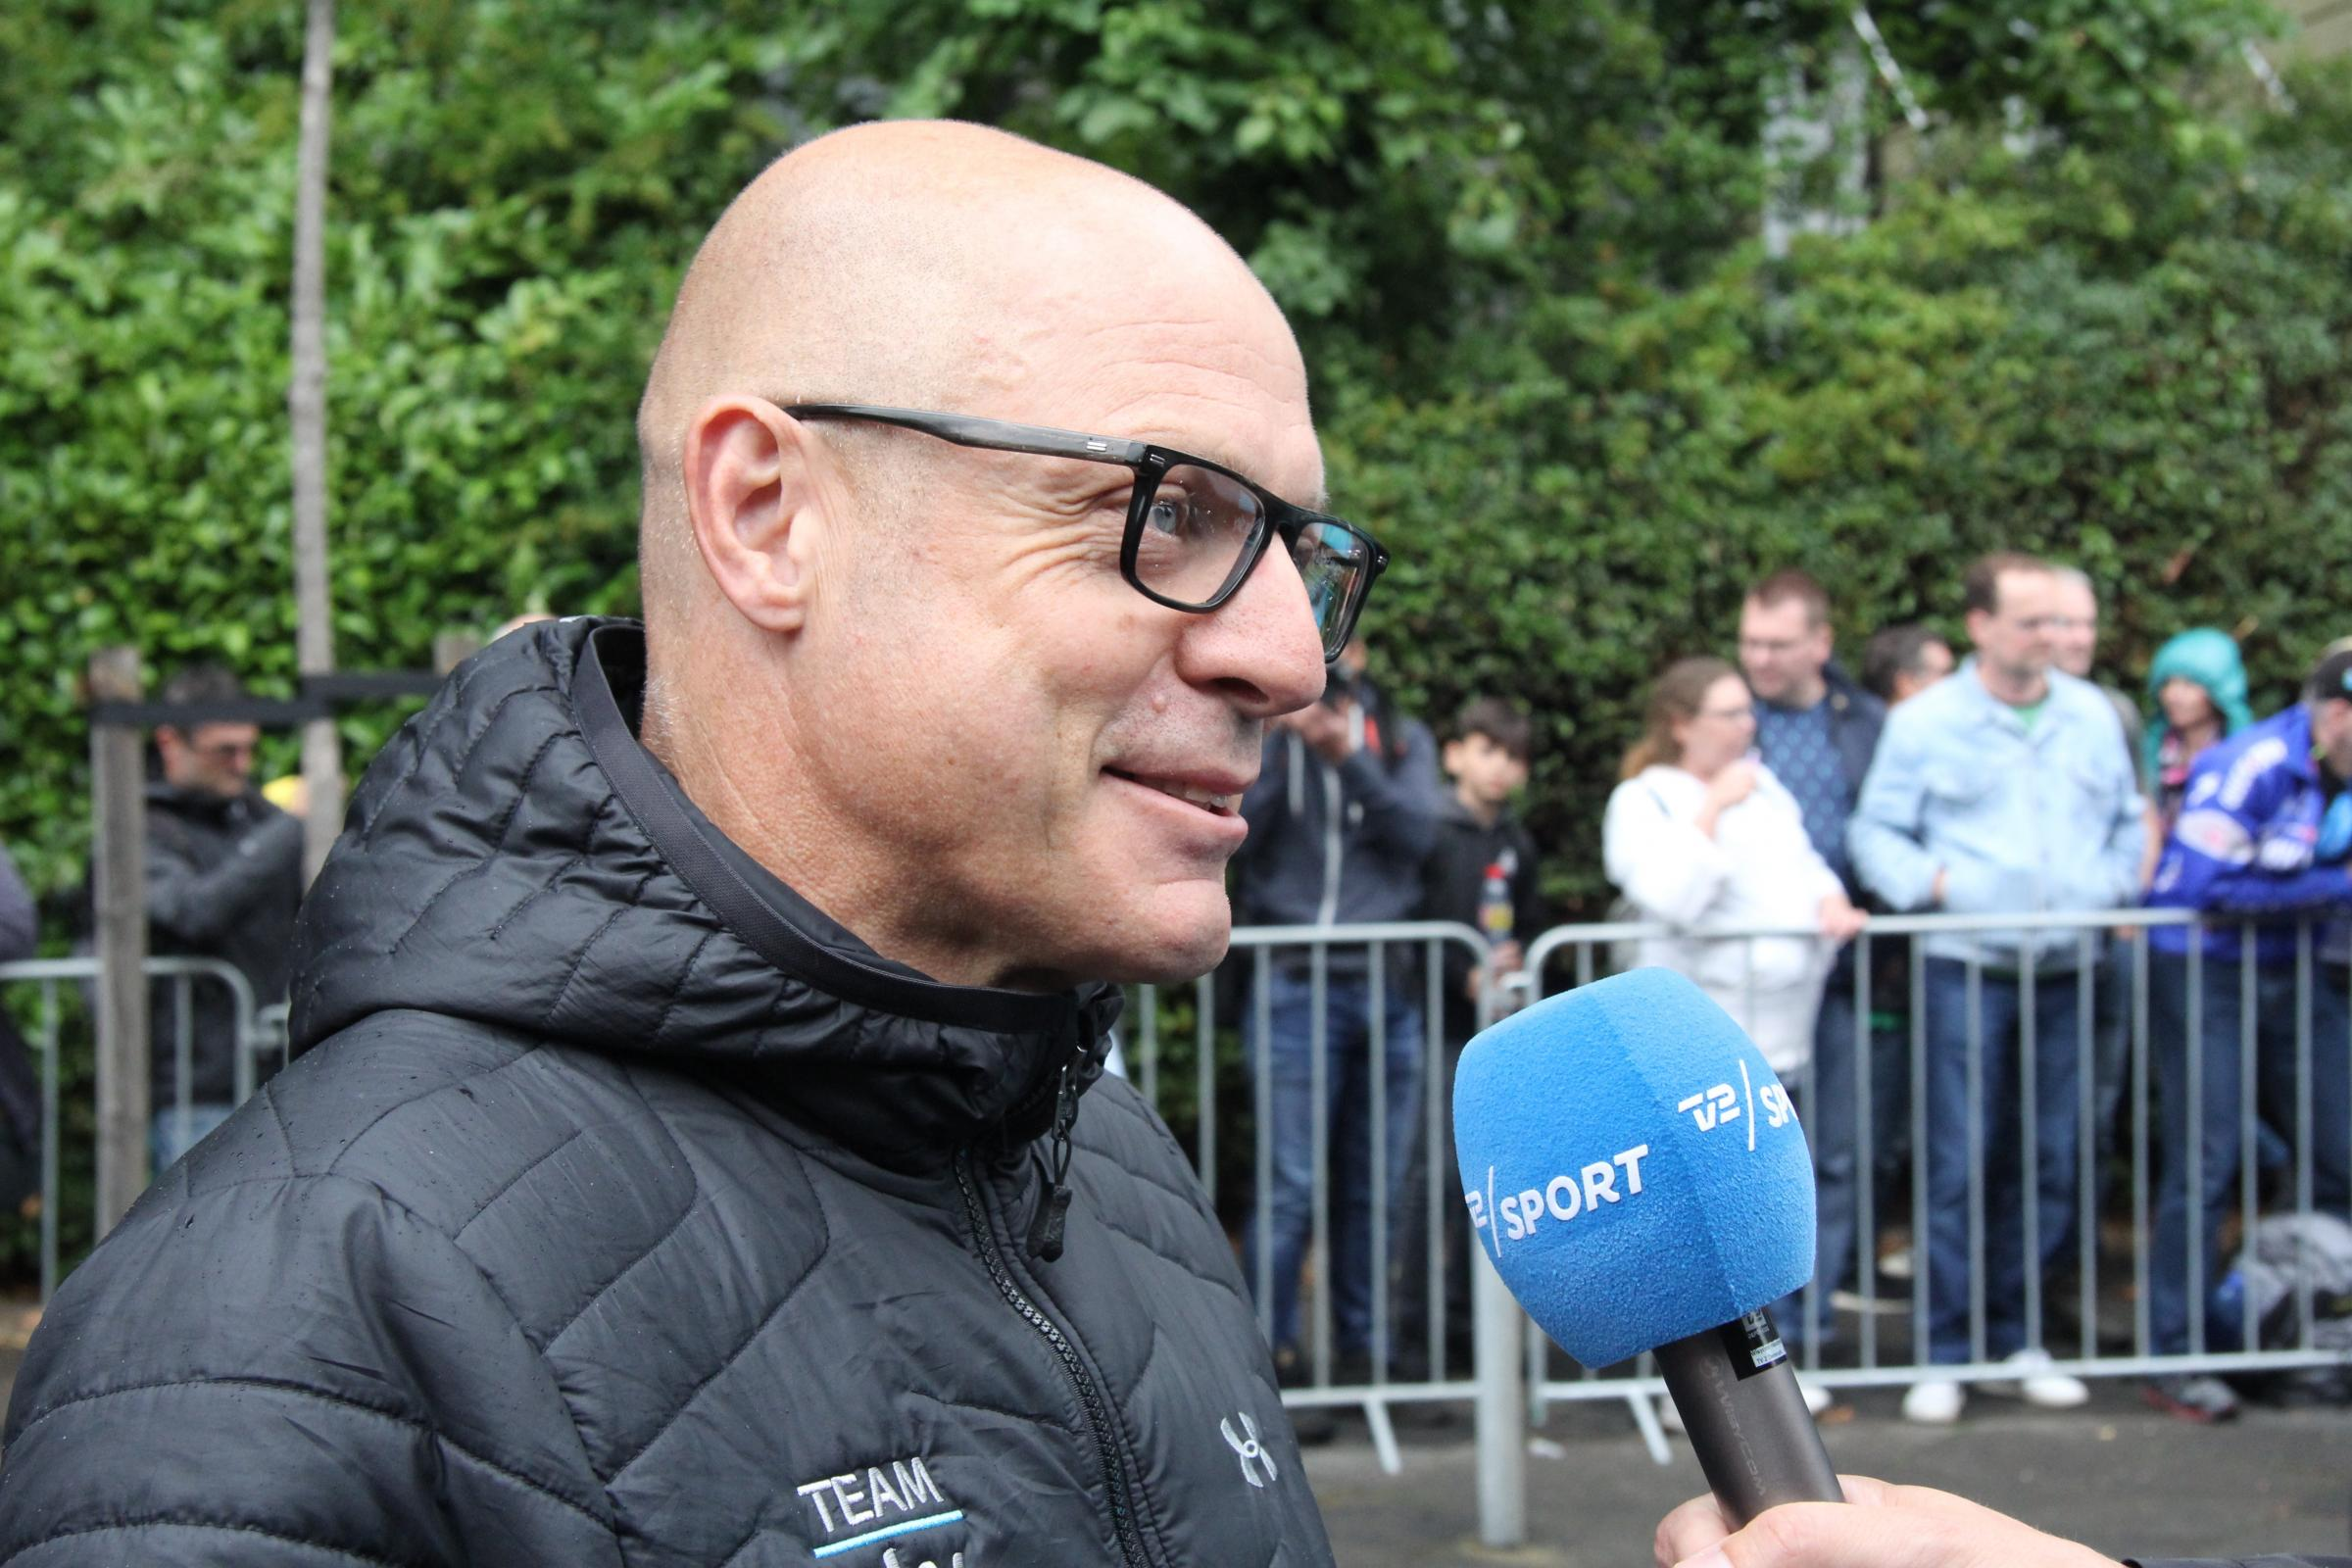 Dave Brailsford is the general manager of Team Sky